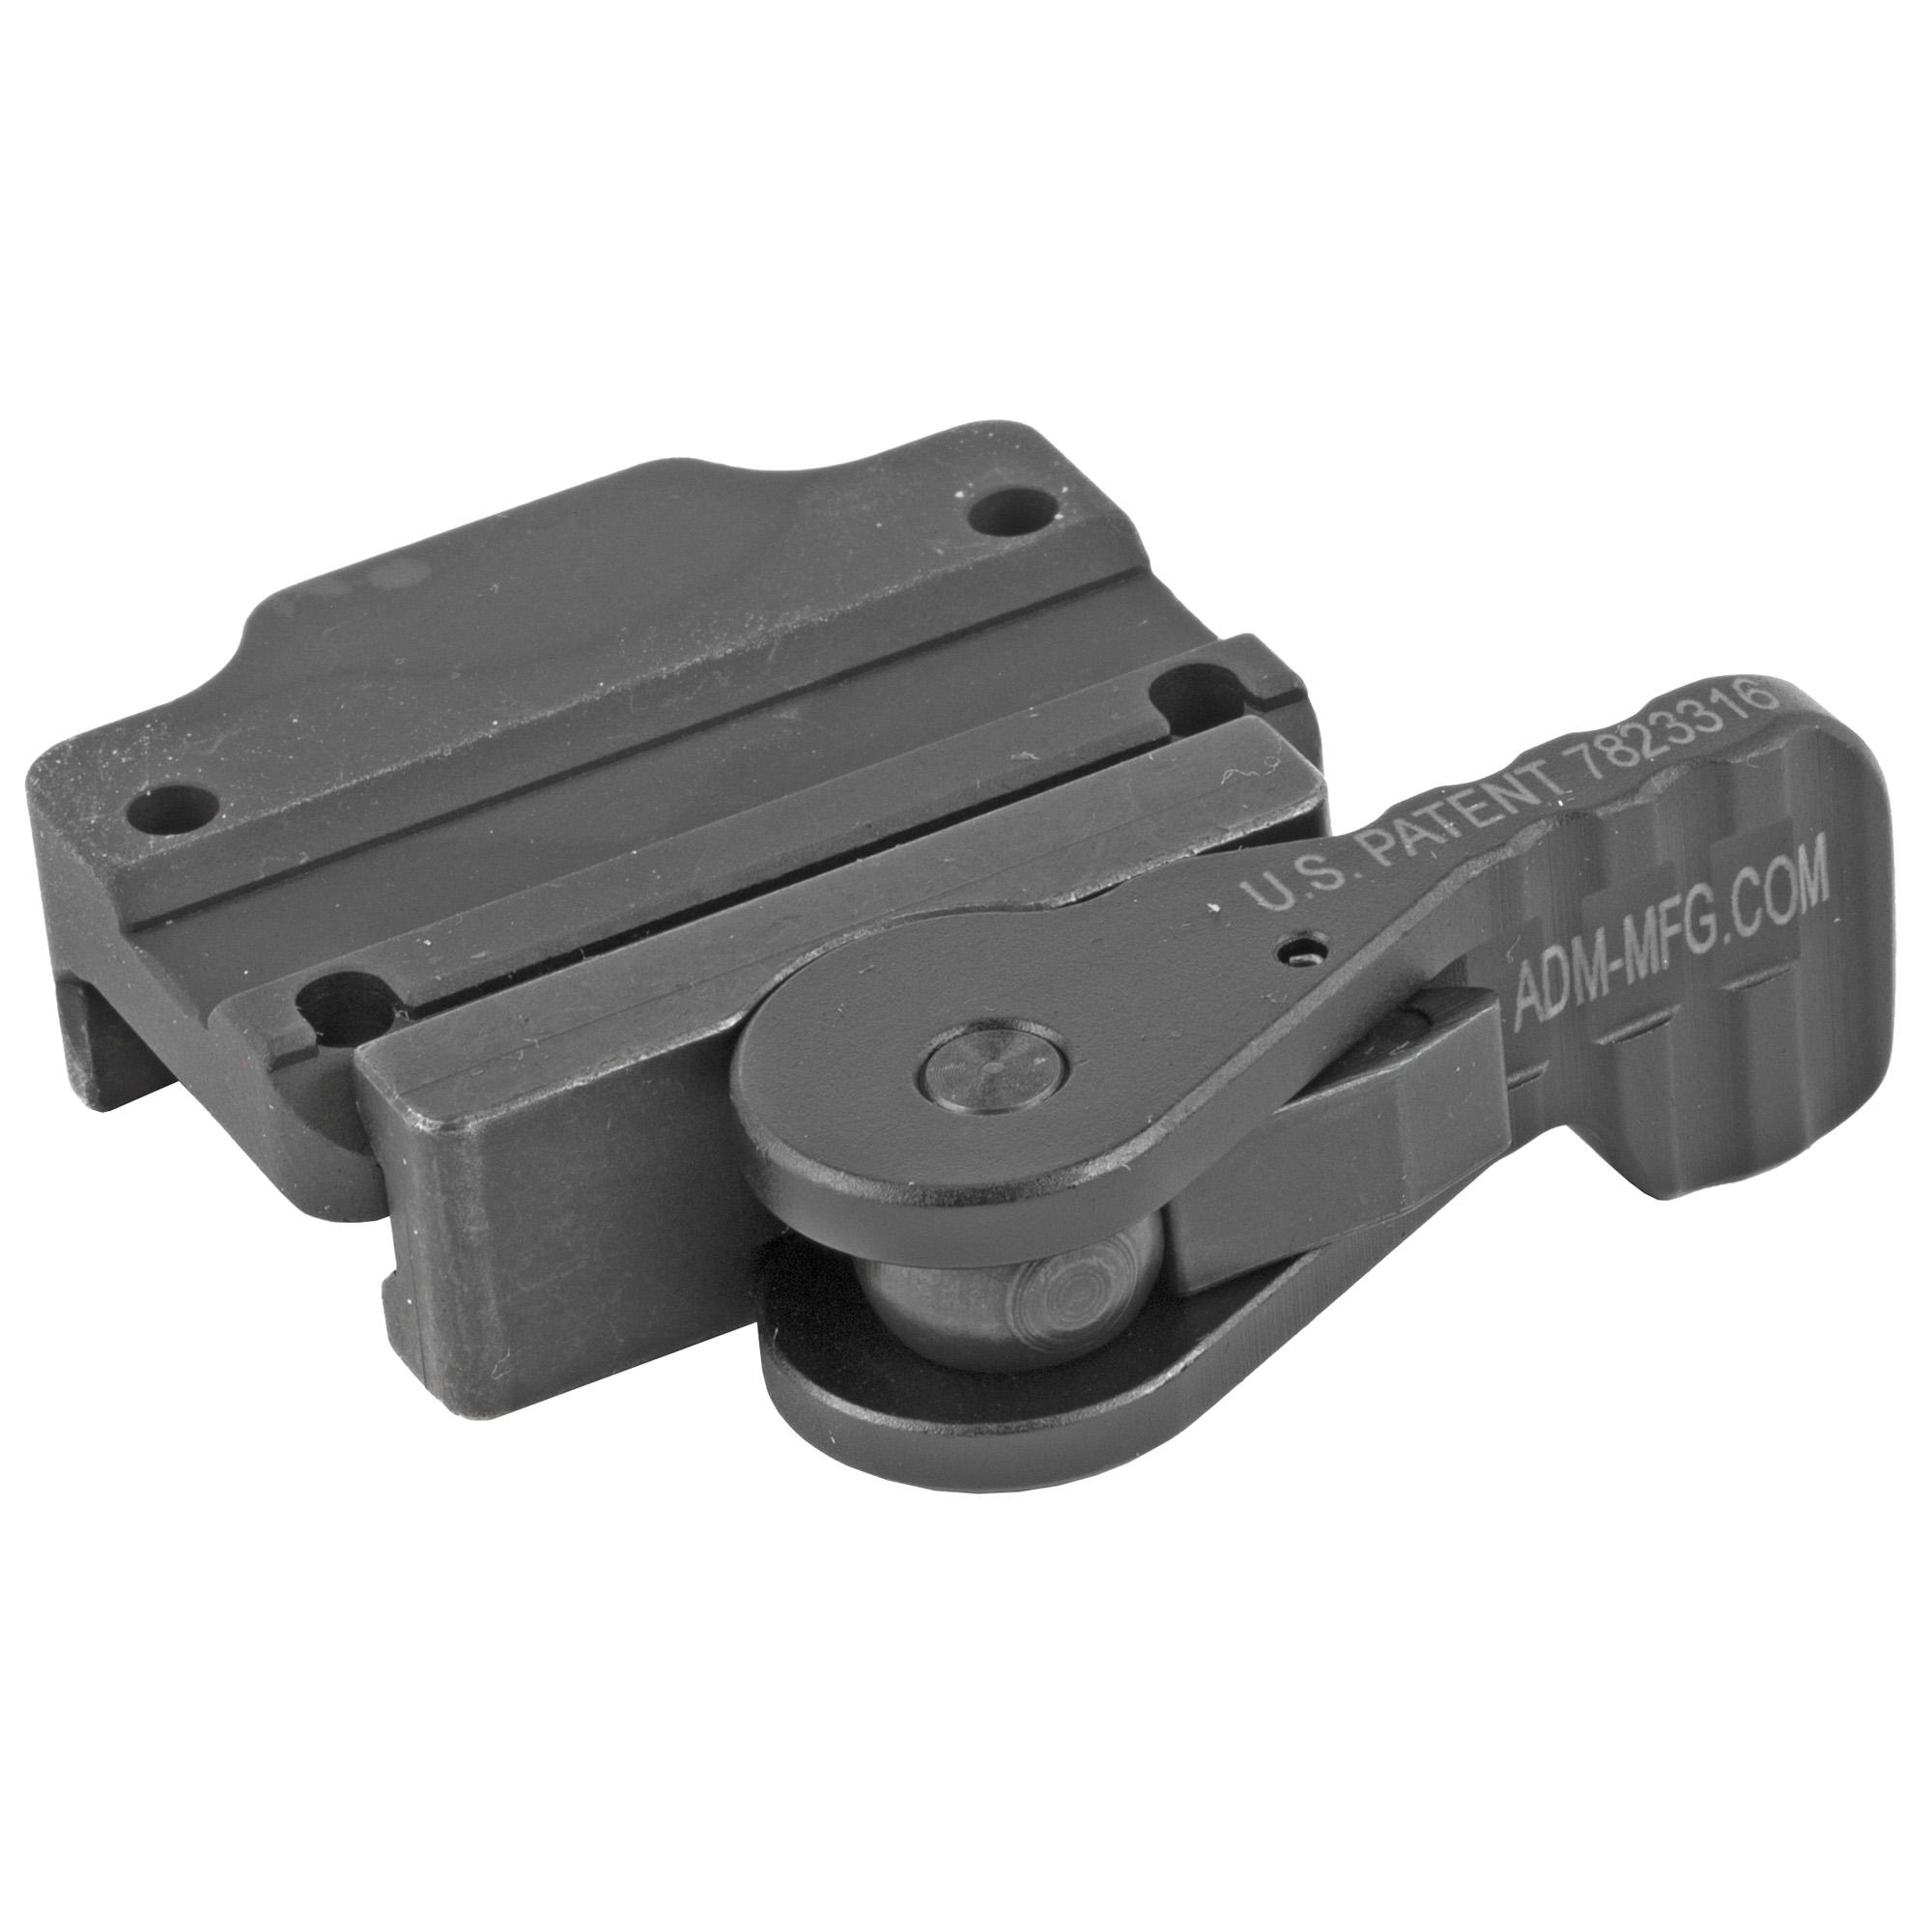 American Defense Mfg. Trijicon Mro Low Mount Tactical AD-MRO-L TAC R Photo 2